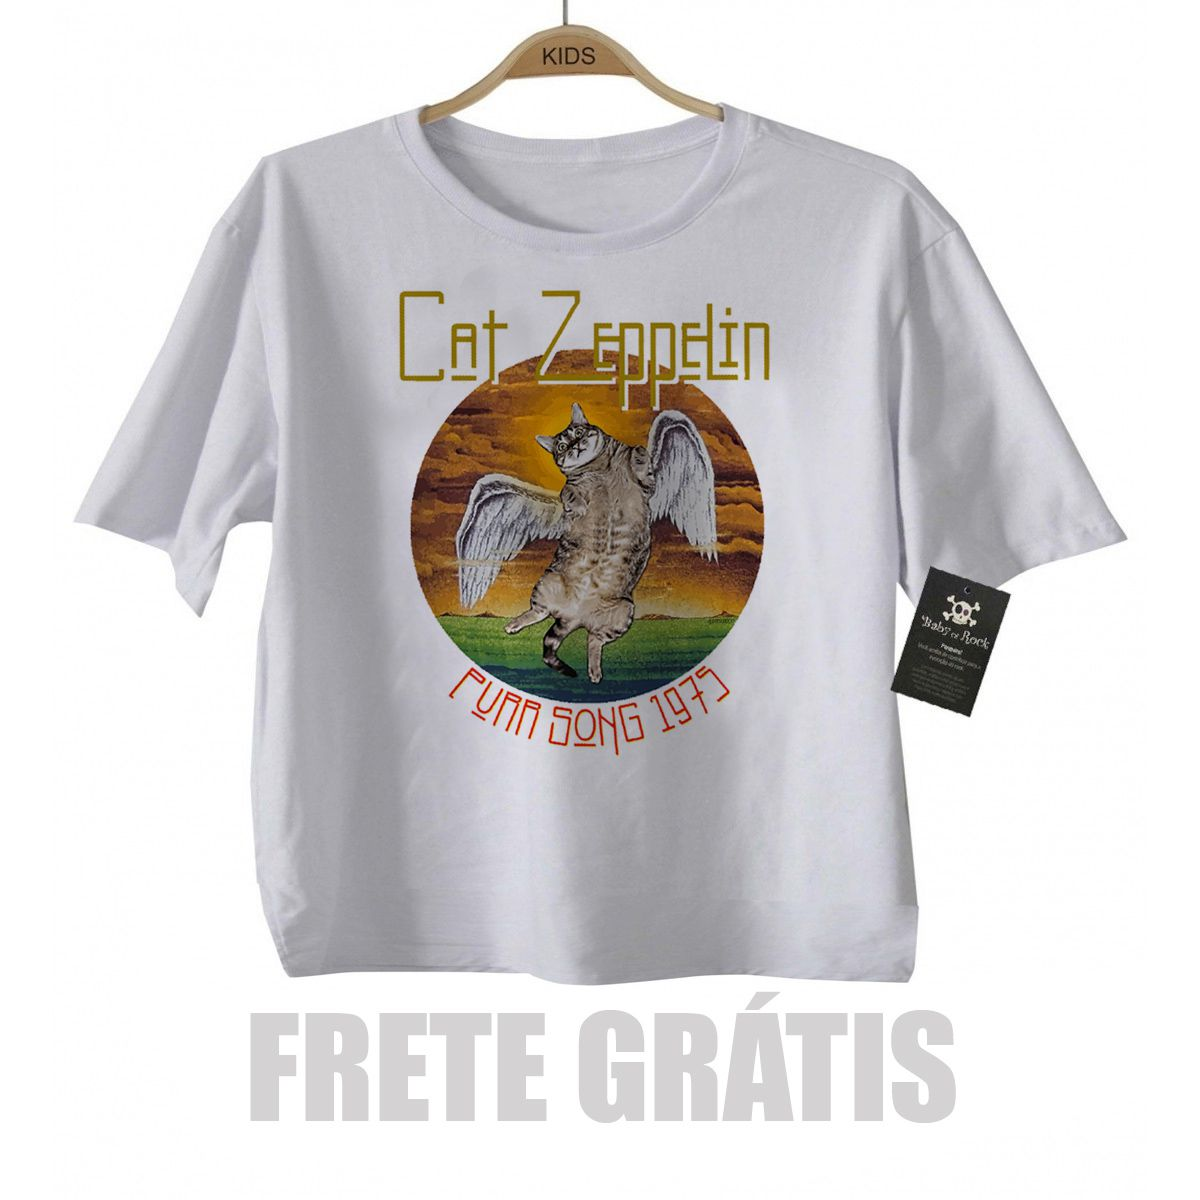 Camiseta infantil  Cat Zeppelin Cute - White  - Baby Monster S/A